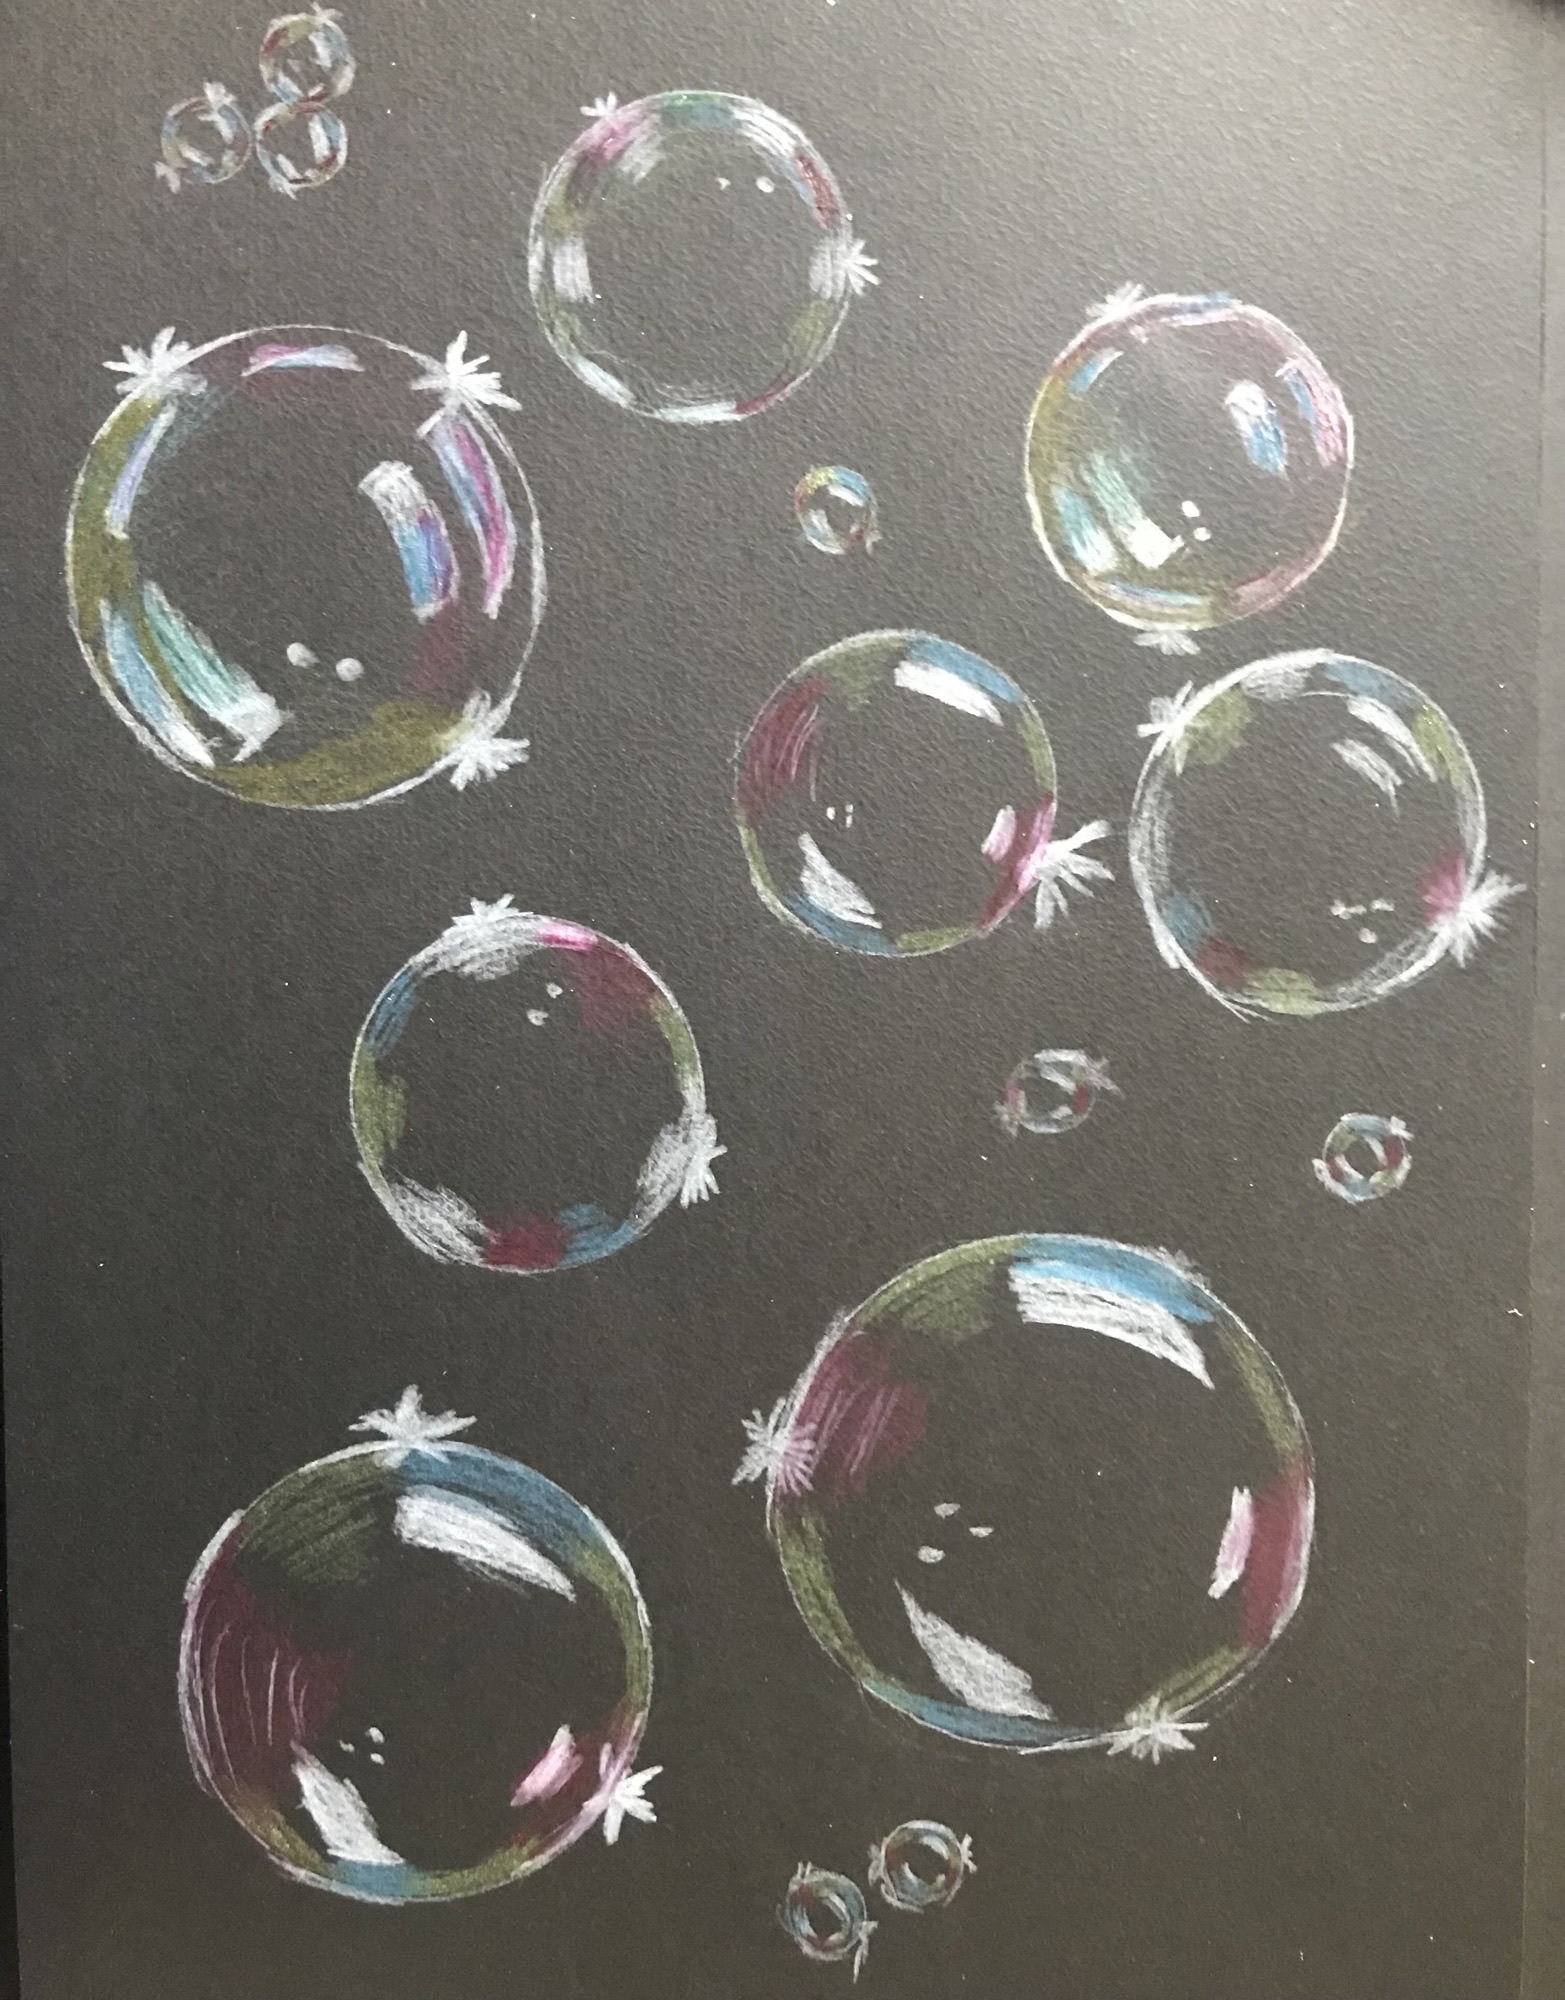 Soap bubbles on a black background. The bubbles have various sizes and contain the colours blue, yellow, pink, green and white.